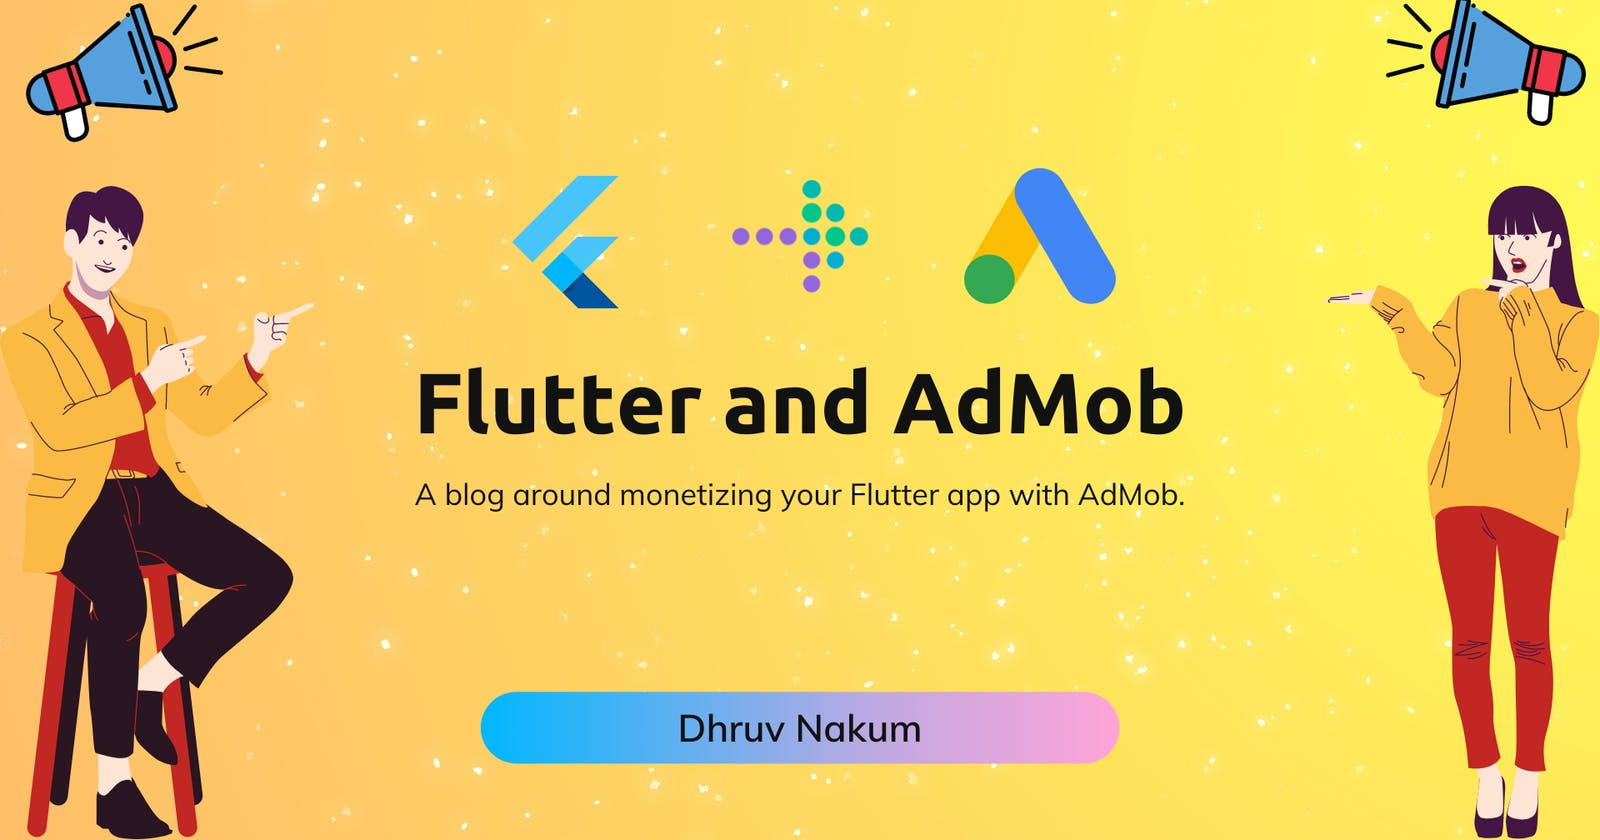 Flutter and AdMob: A blog around monetizing your Flutter app with AdMob.